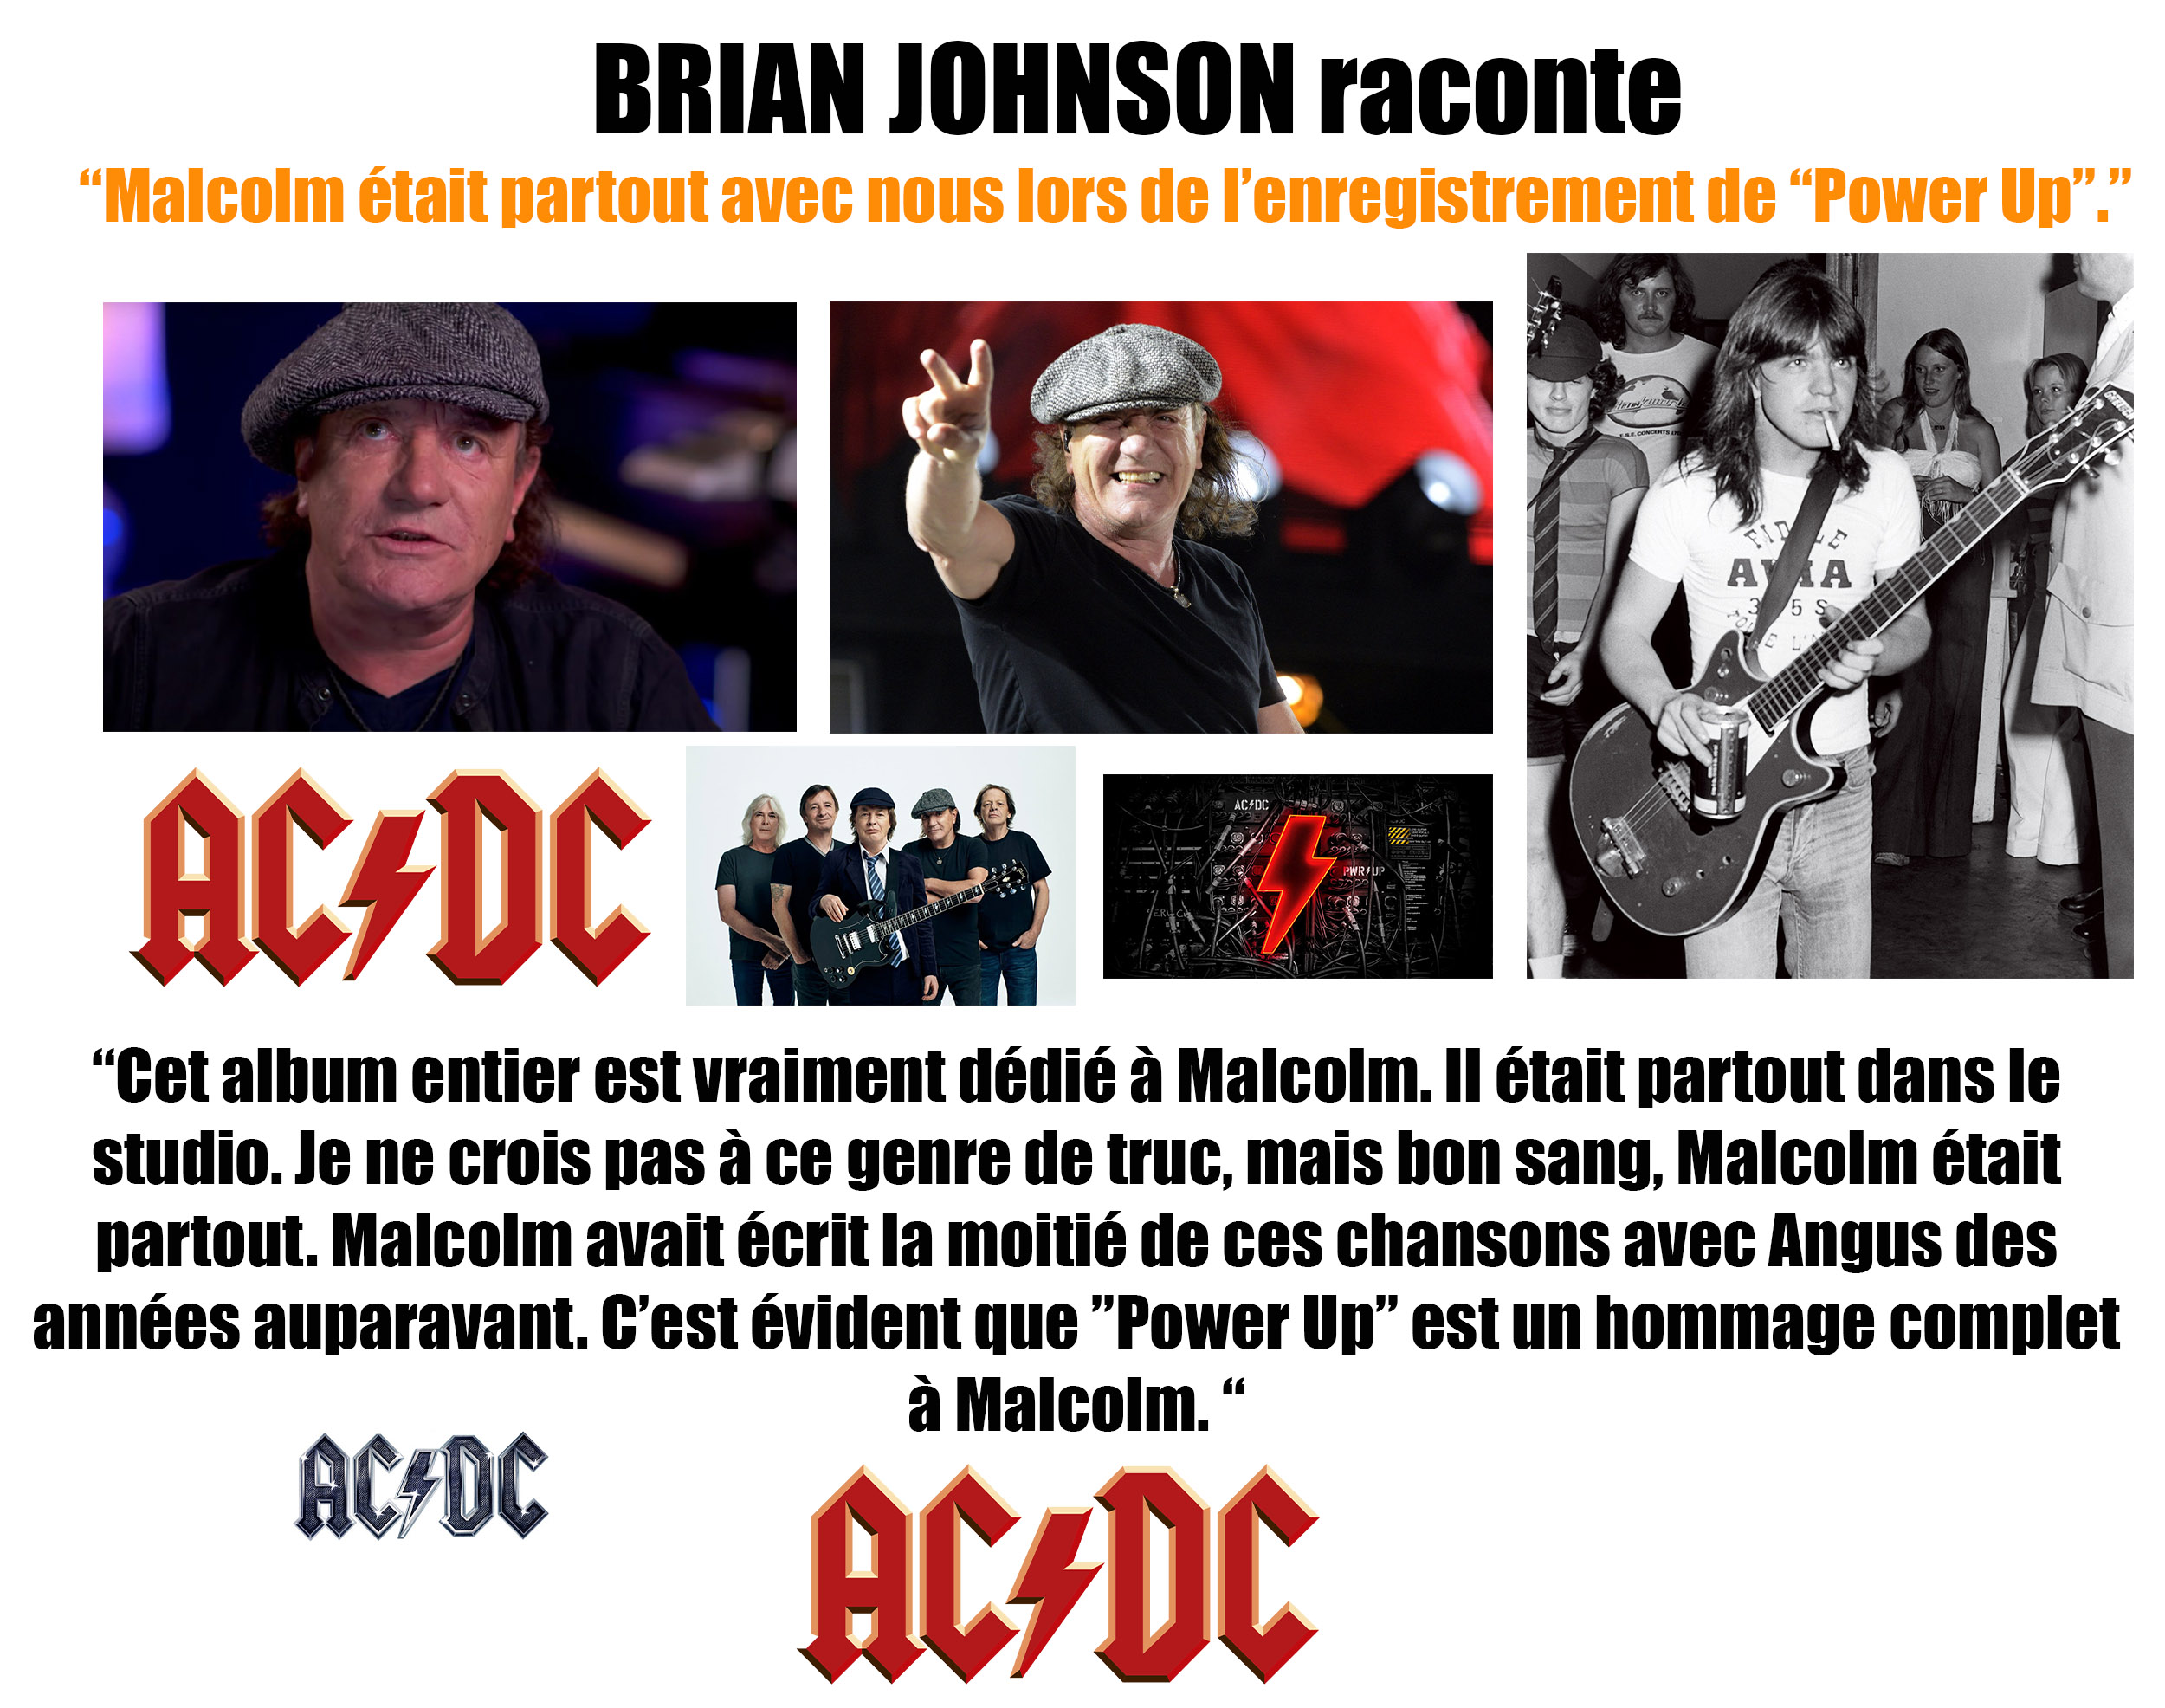 ACDC Power Up (2020) Hard-Rock Australie - Page 3 Acdc_b11